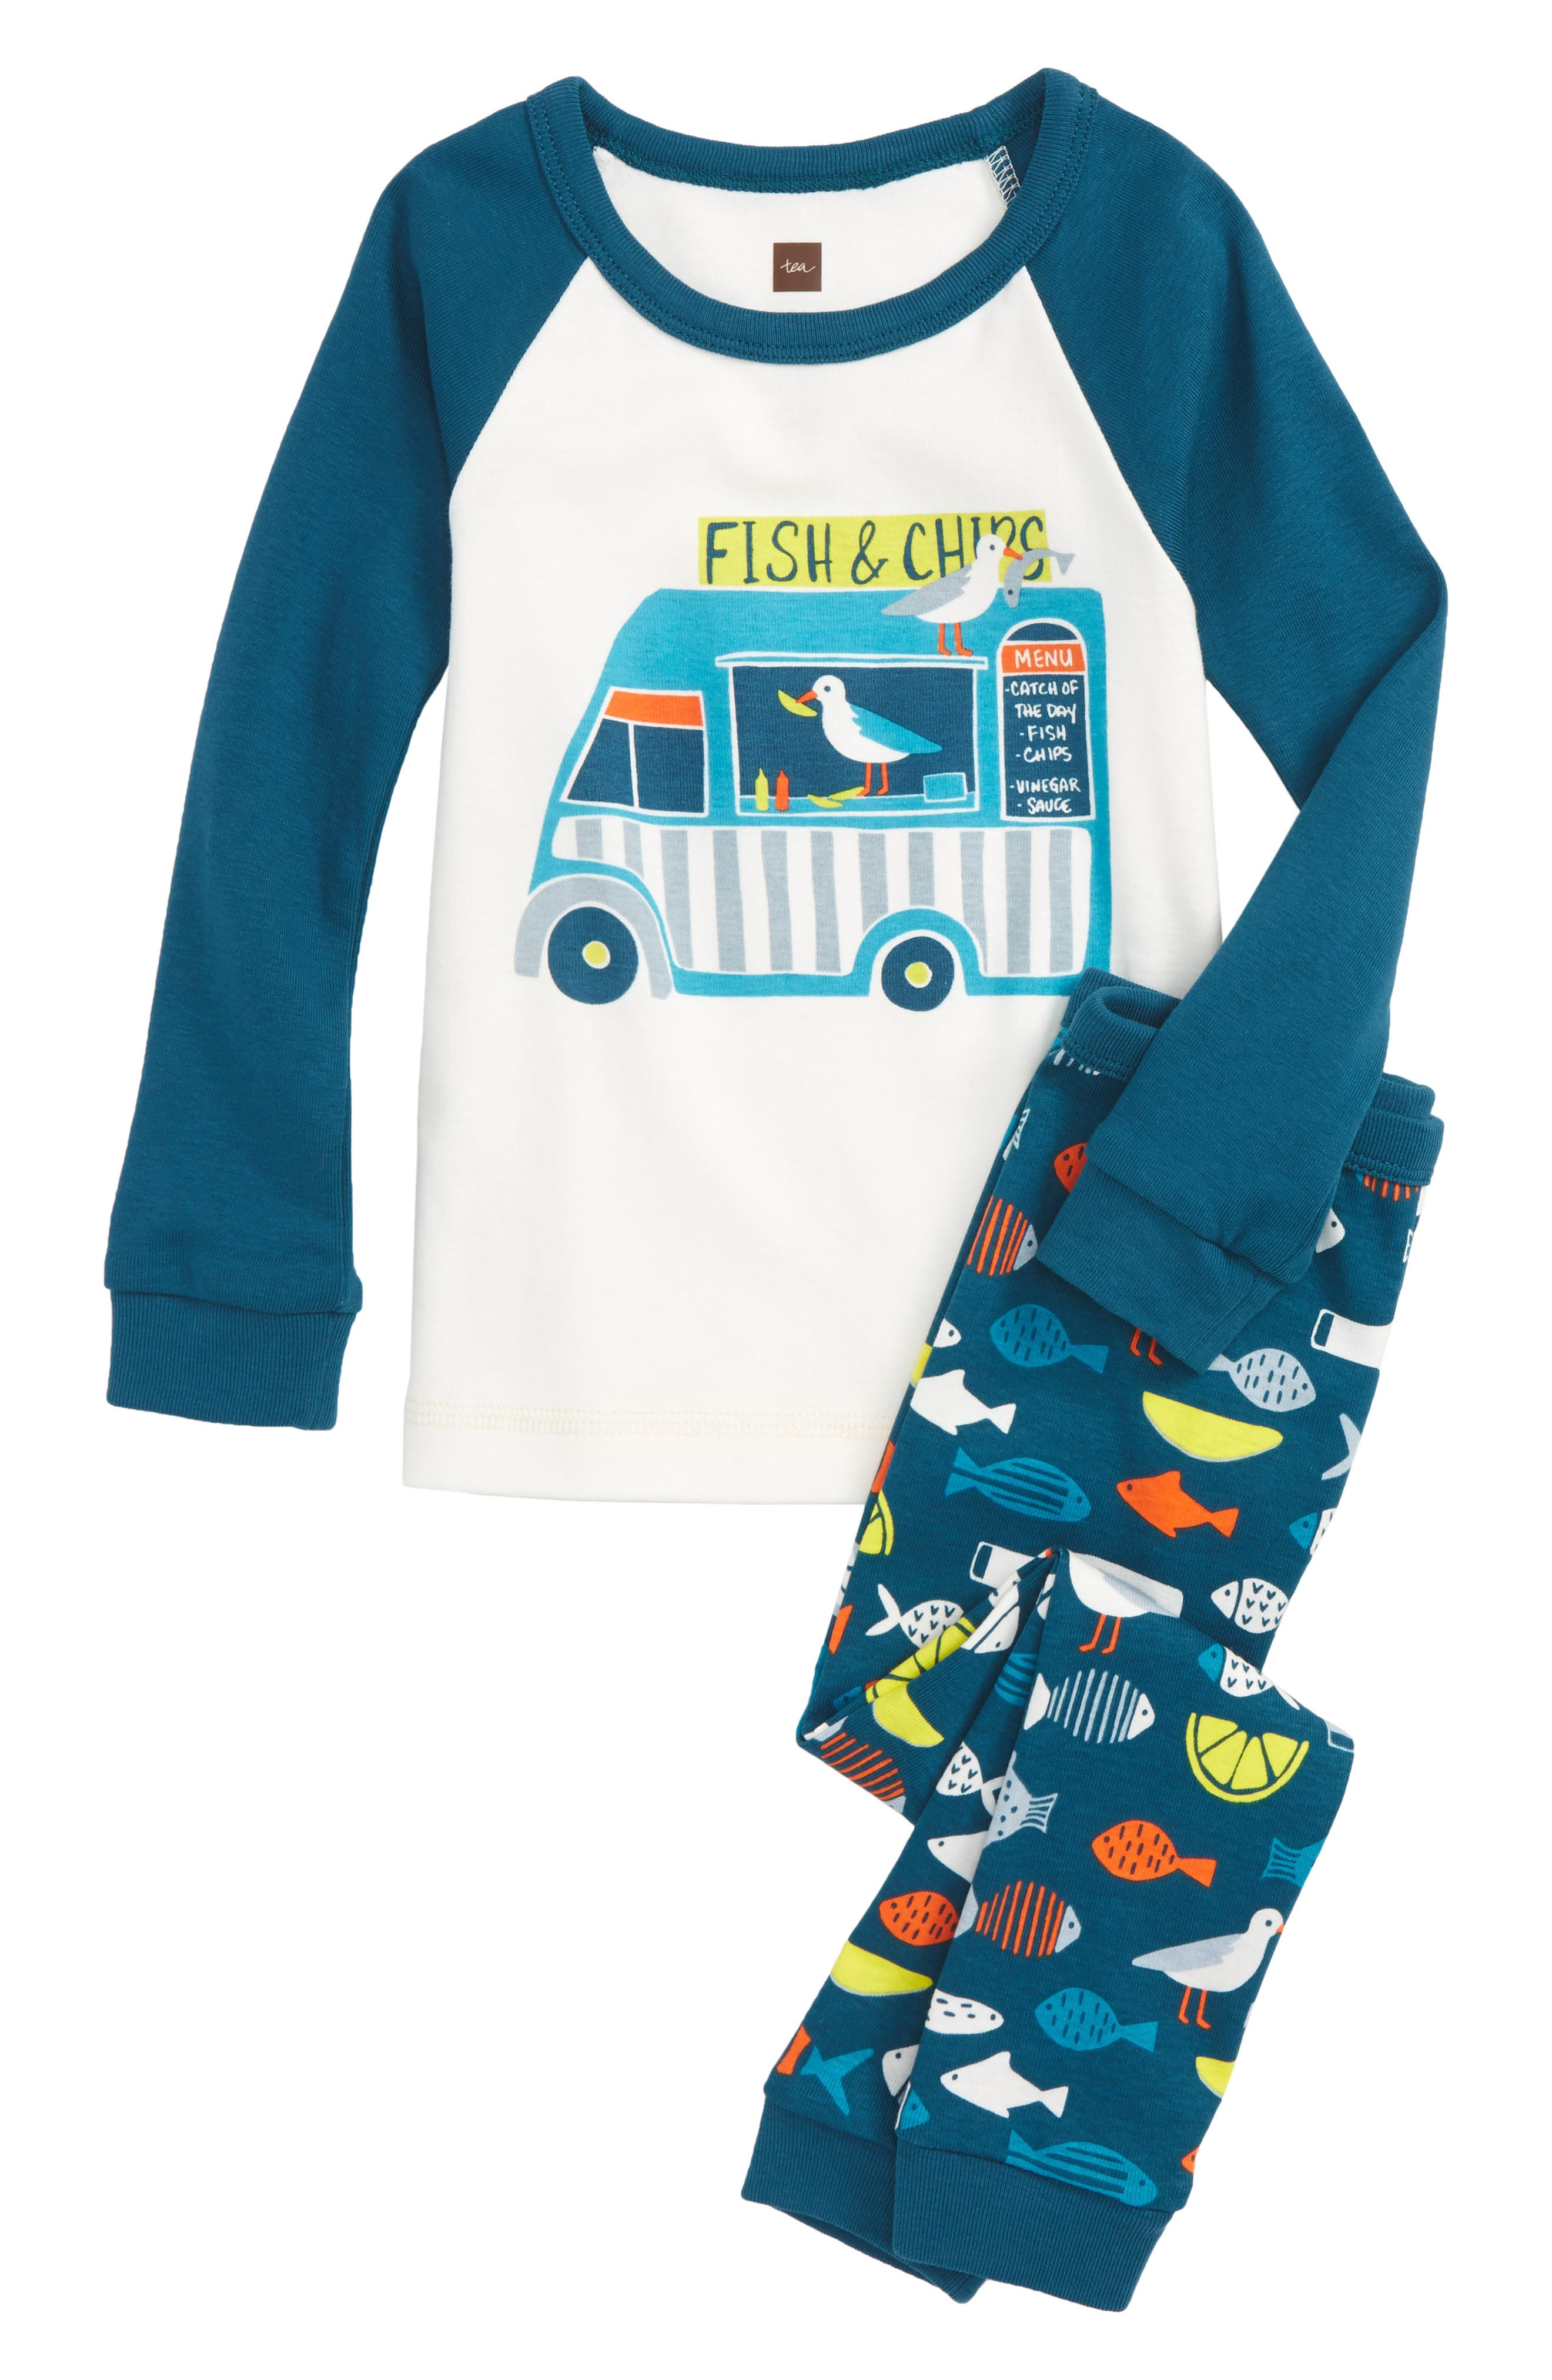 Fish & Chips Fitted Two-Piece Pajamas,                         Main,                         color, 413